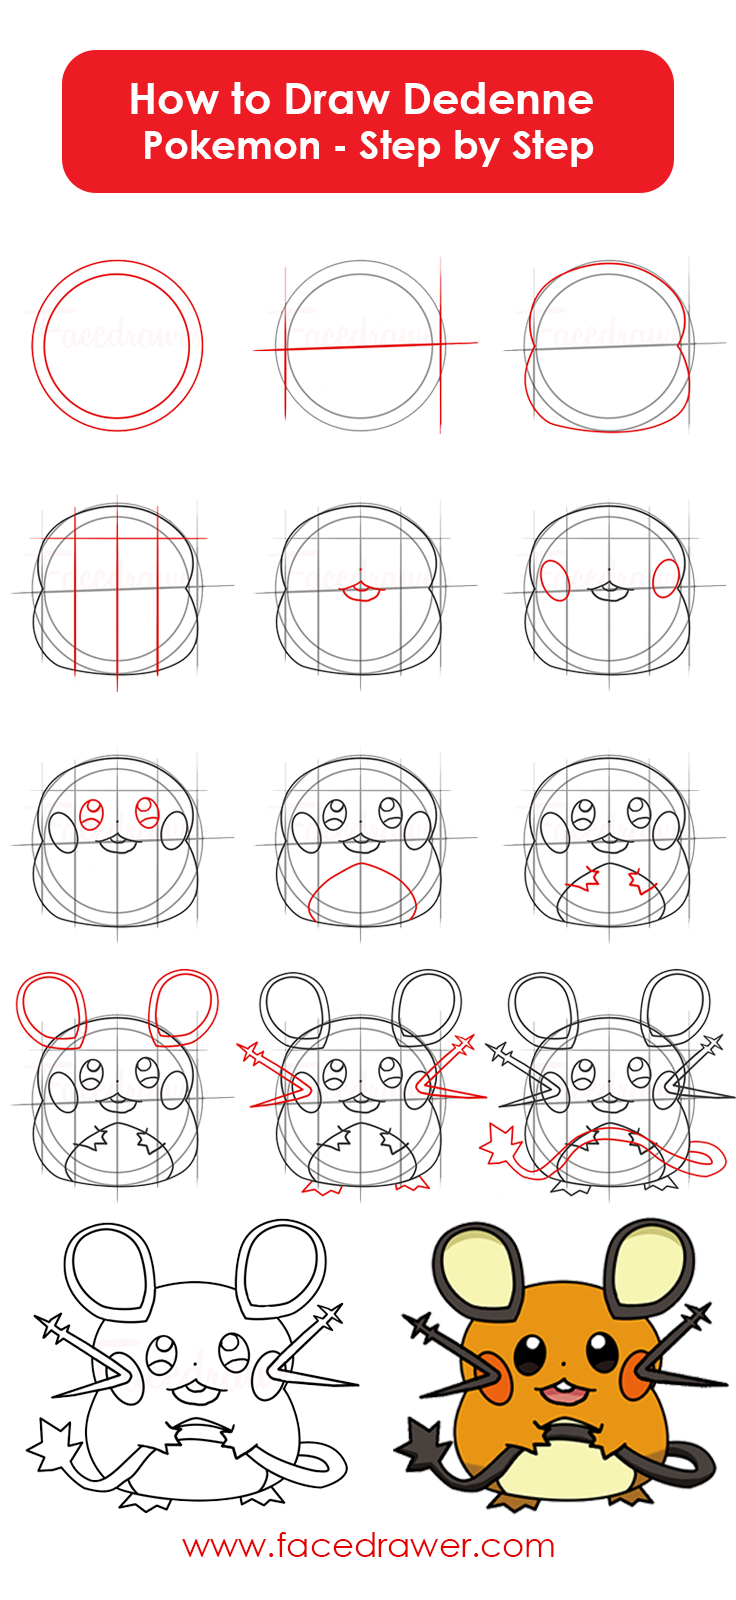 how-to-draw-dedenne-pokemon-step-by-step-infographic